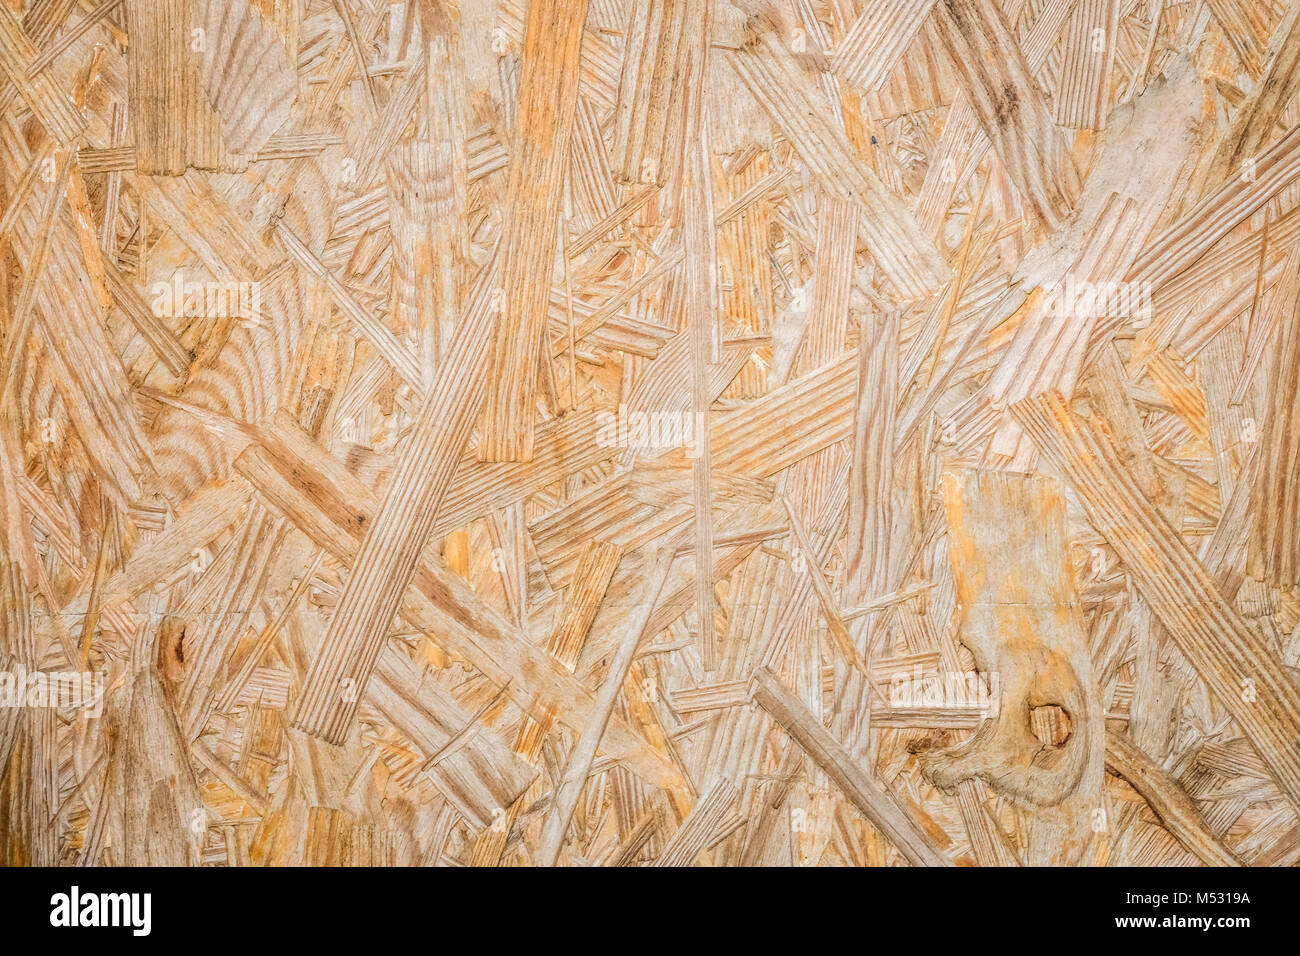 Background texture of a wooden wall panel Stock Photo: 175243862 - Alamy